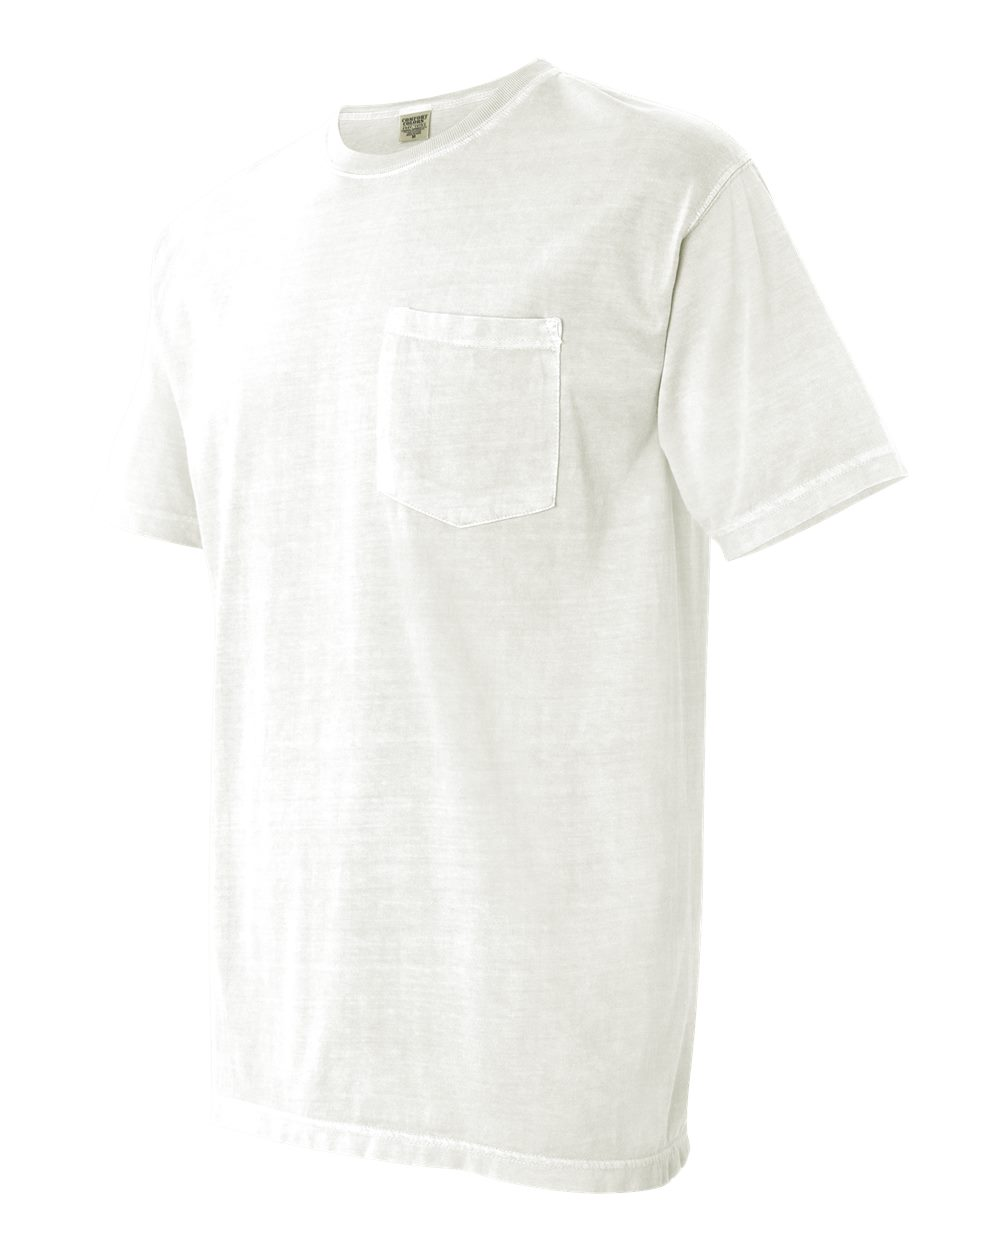 Comfort-Colors-Men-039-s-6-1-oz-Garment-Dyed-Pocket-T-Shirt-6030CC-S-3XL thumbnail 81